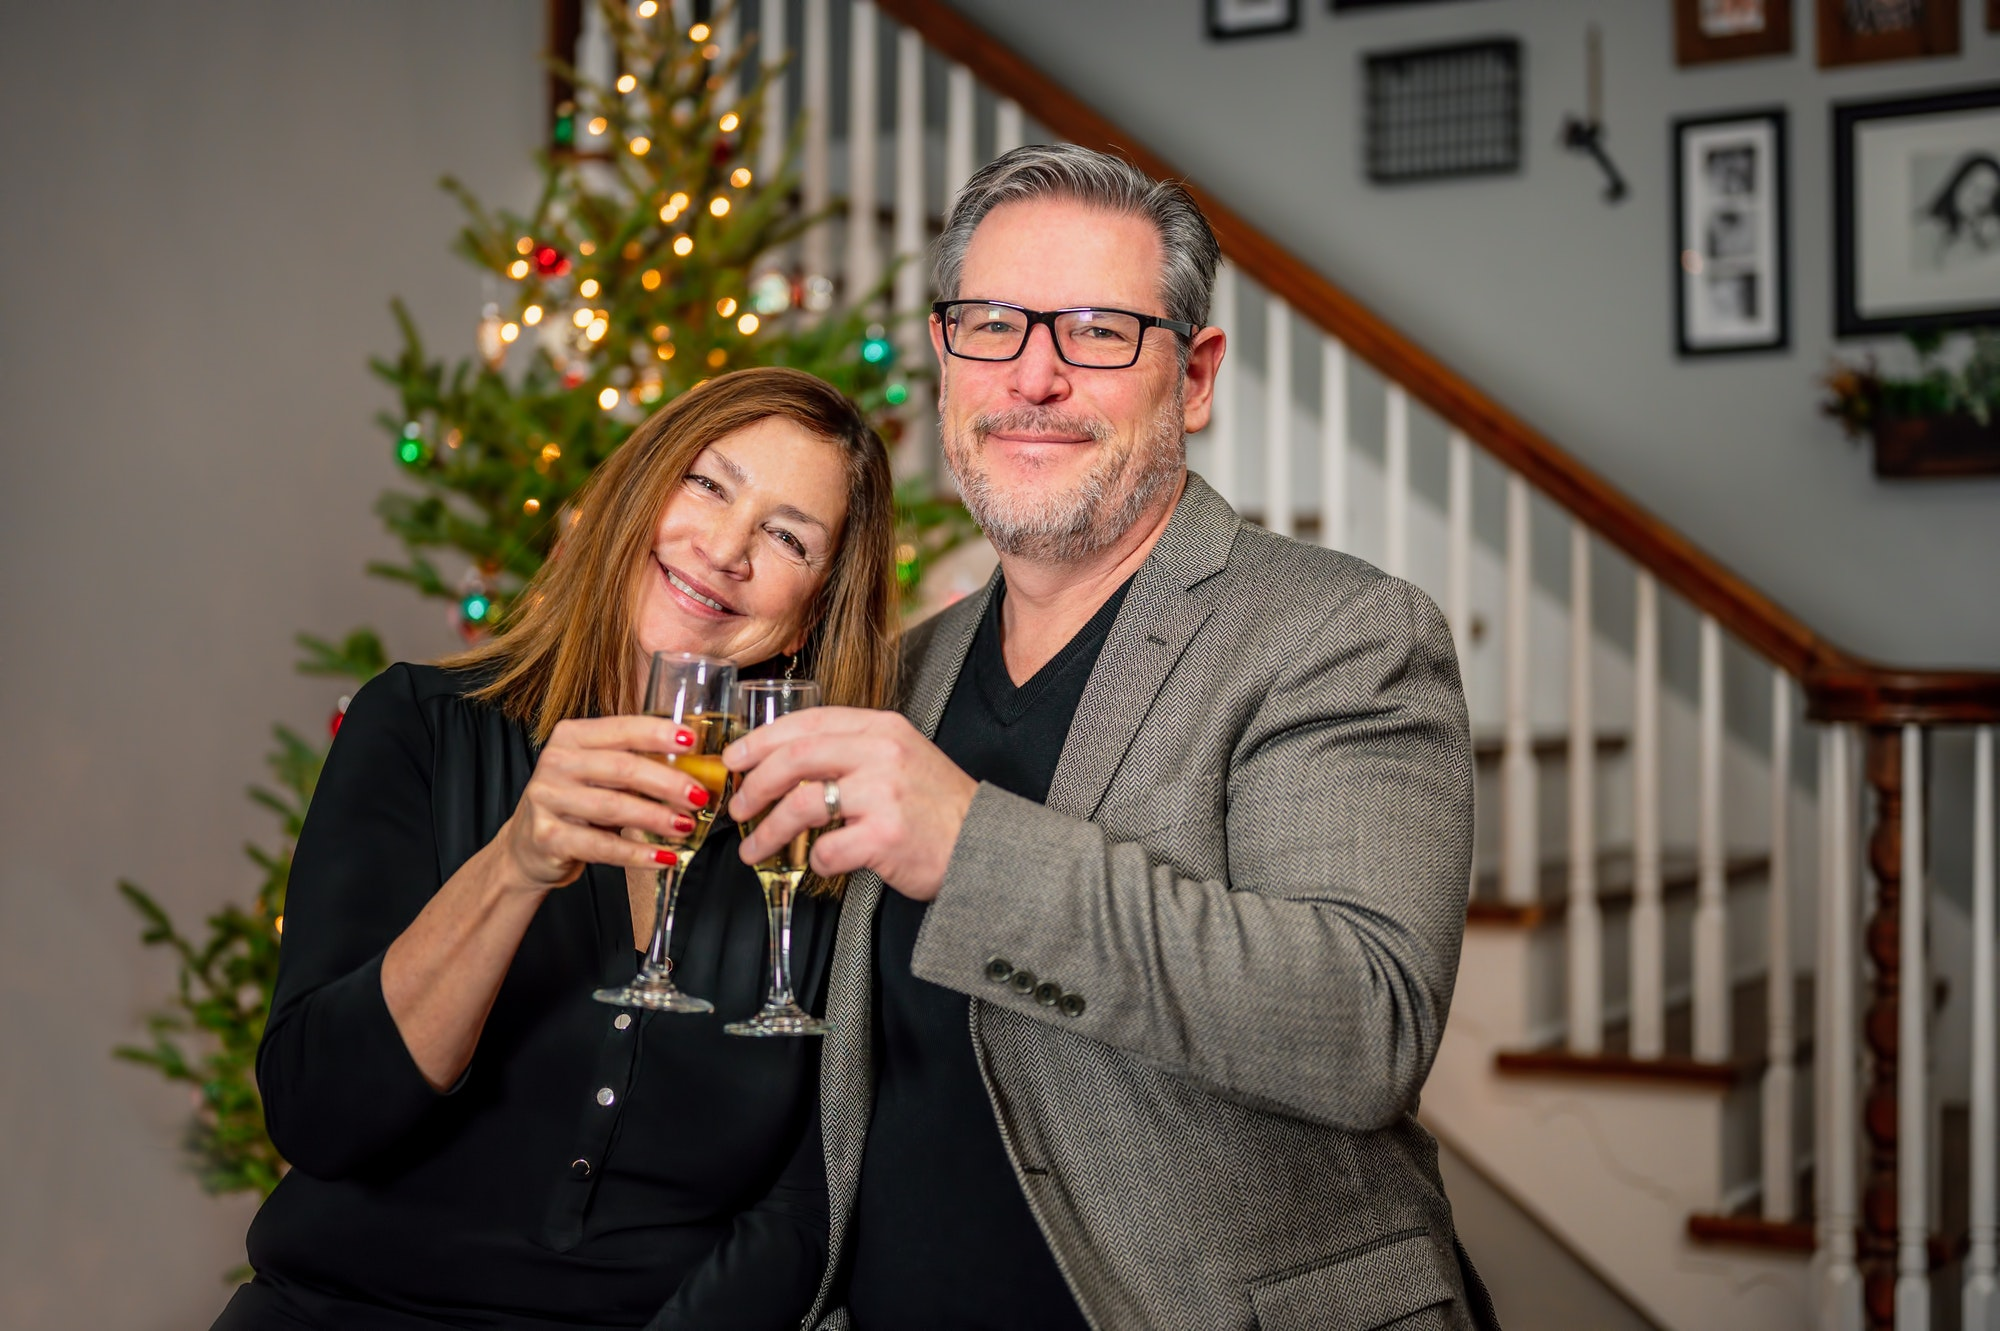 Smiling couple celebrating wedding anniversary at home with glass of champagne